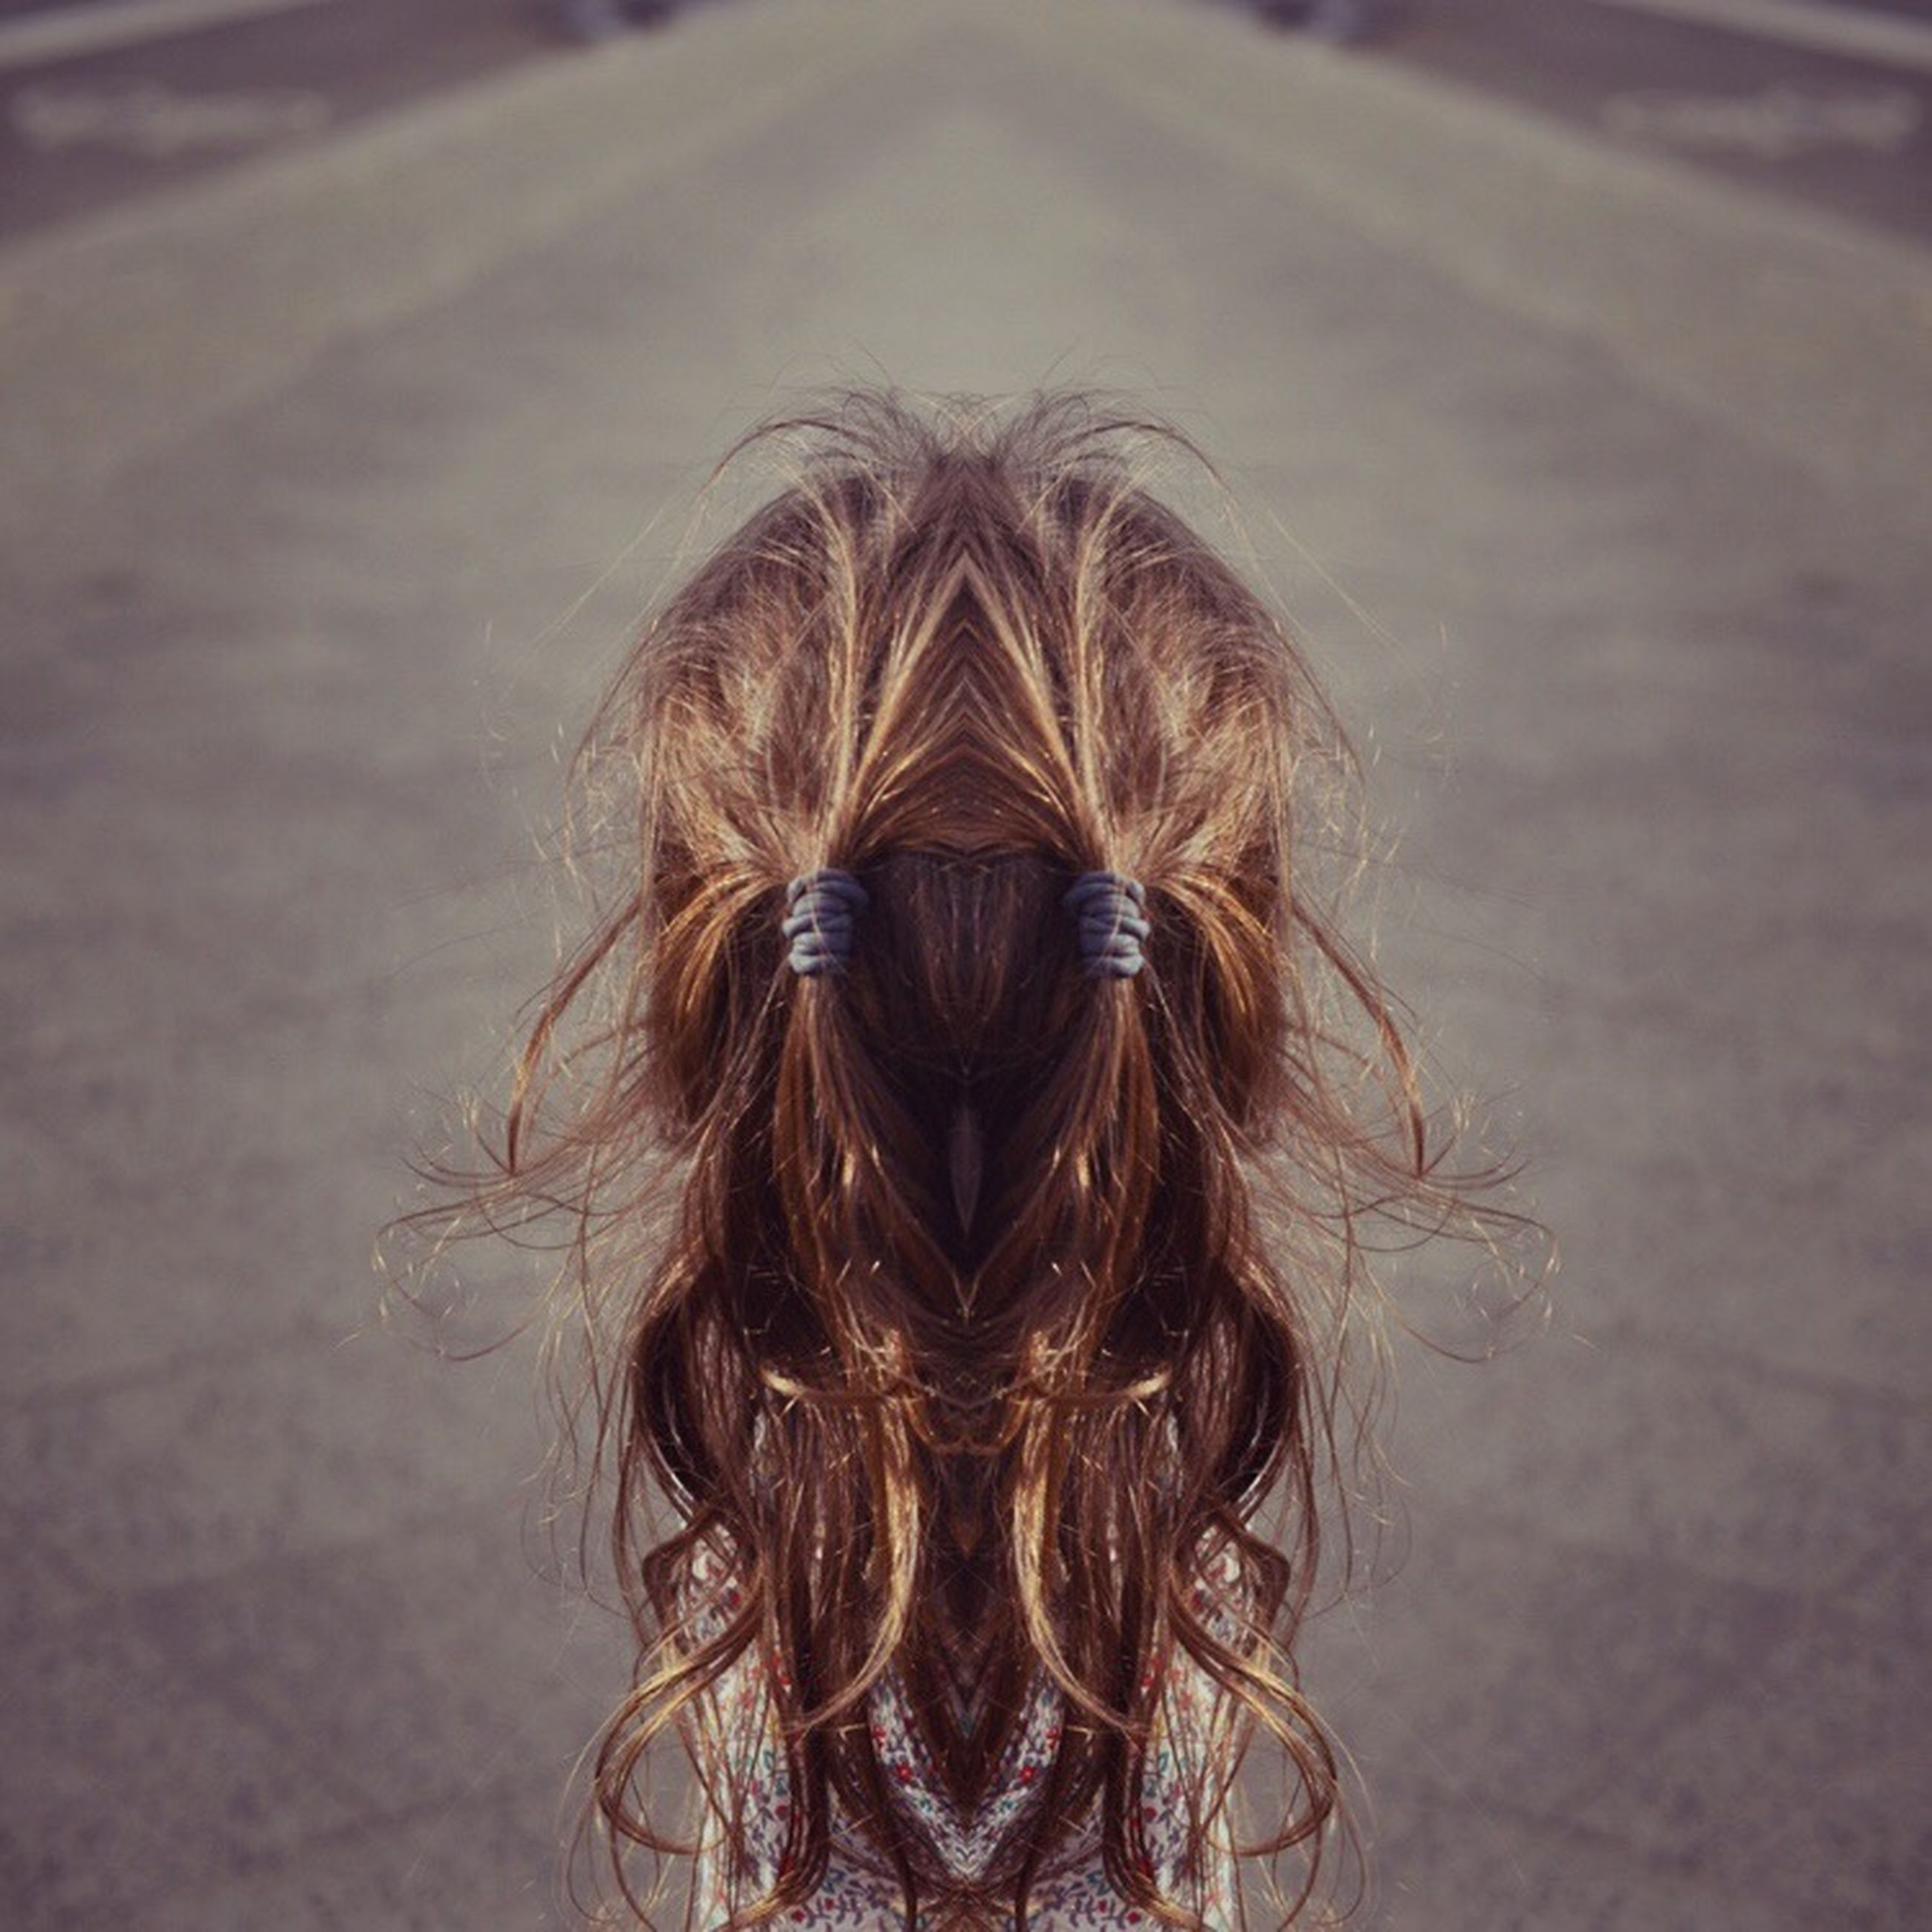 focus on foreground, close-up, long hair, headshot, lifestyles, blond hair, human hair, leisure activity, brown hair, person, animal hair, day, outdoors, rear view, selective focus, front view, young women, elementary age